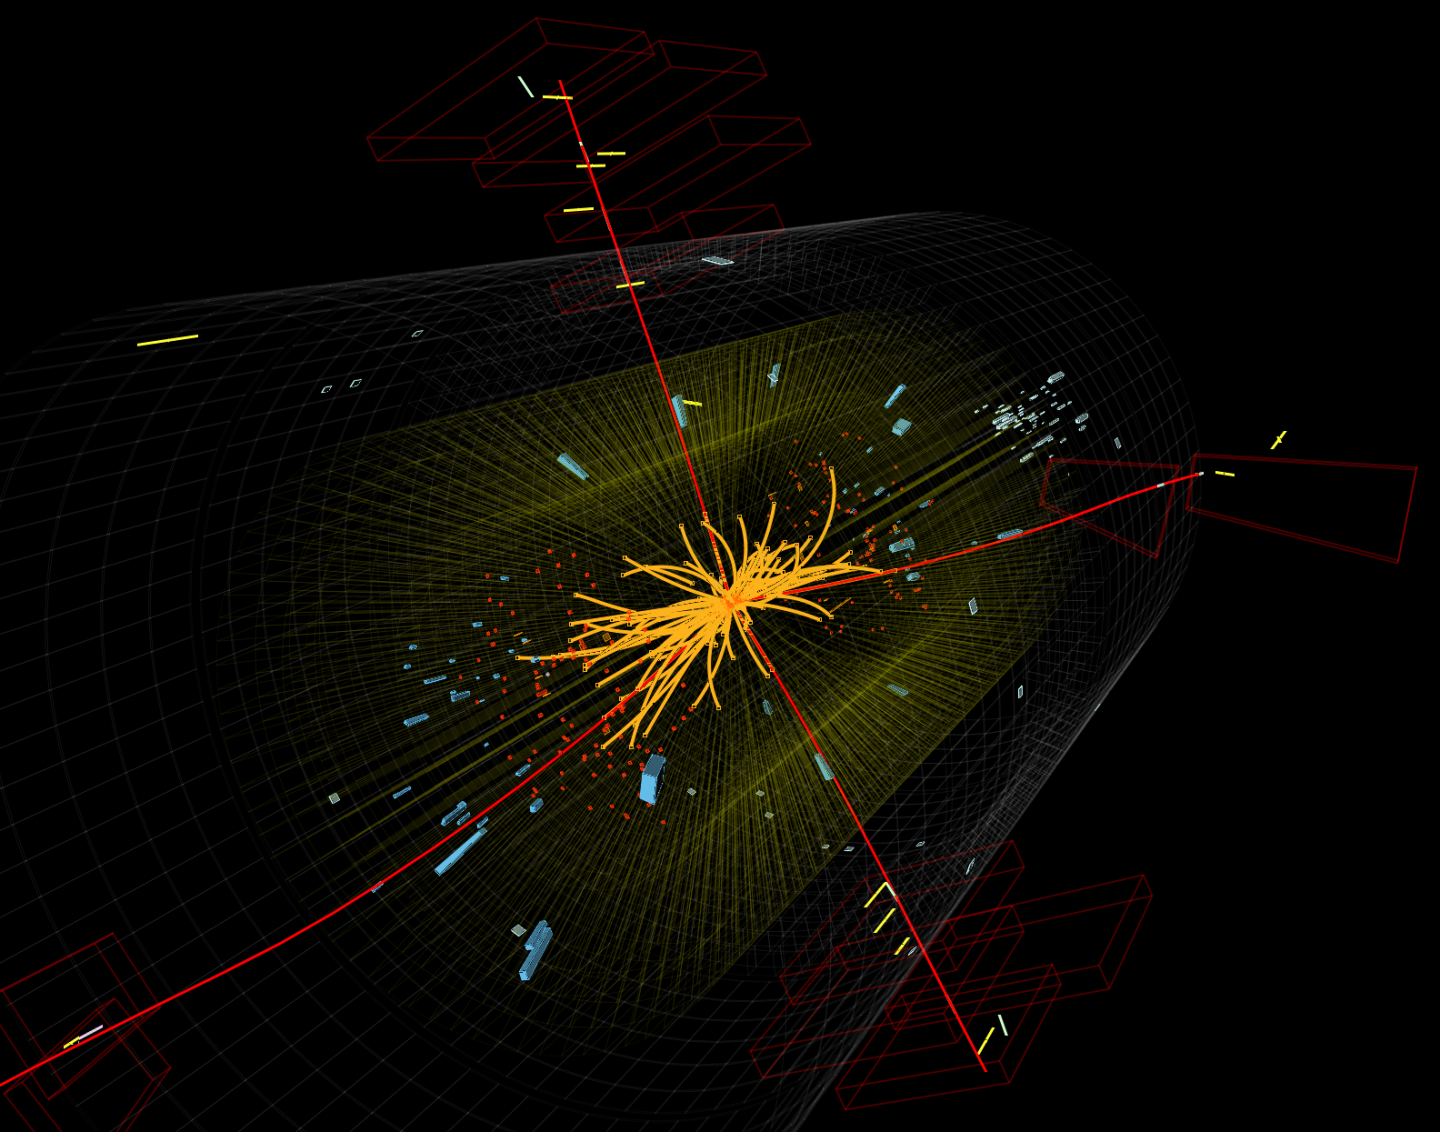 Candidate events in the CMS Standard Model Higgs Search using 2010 and 2011 data